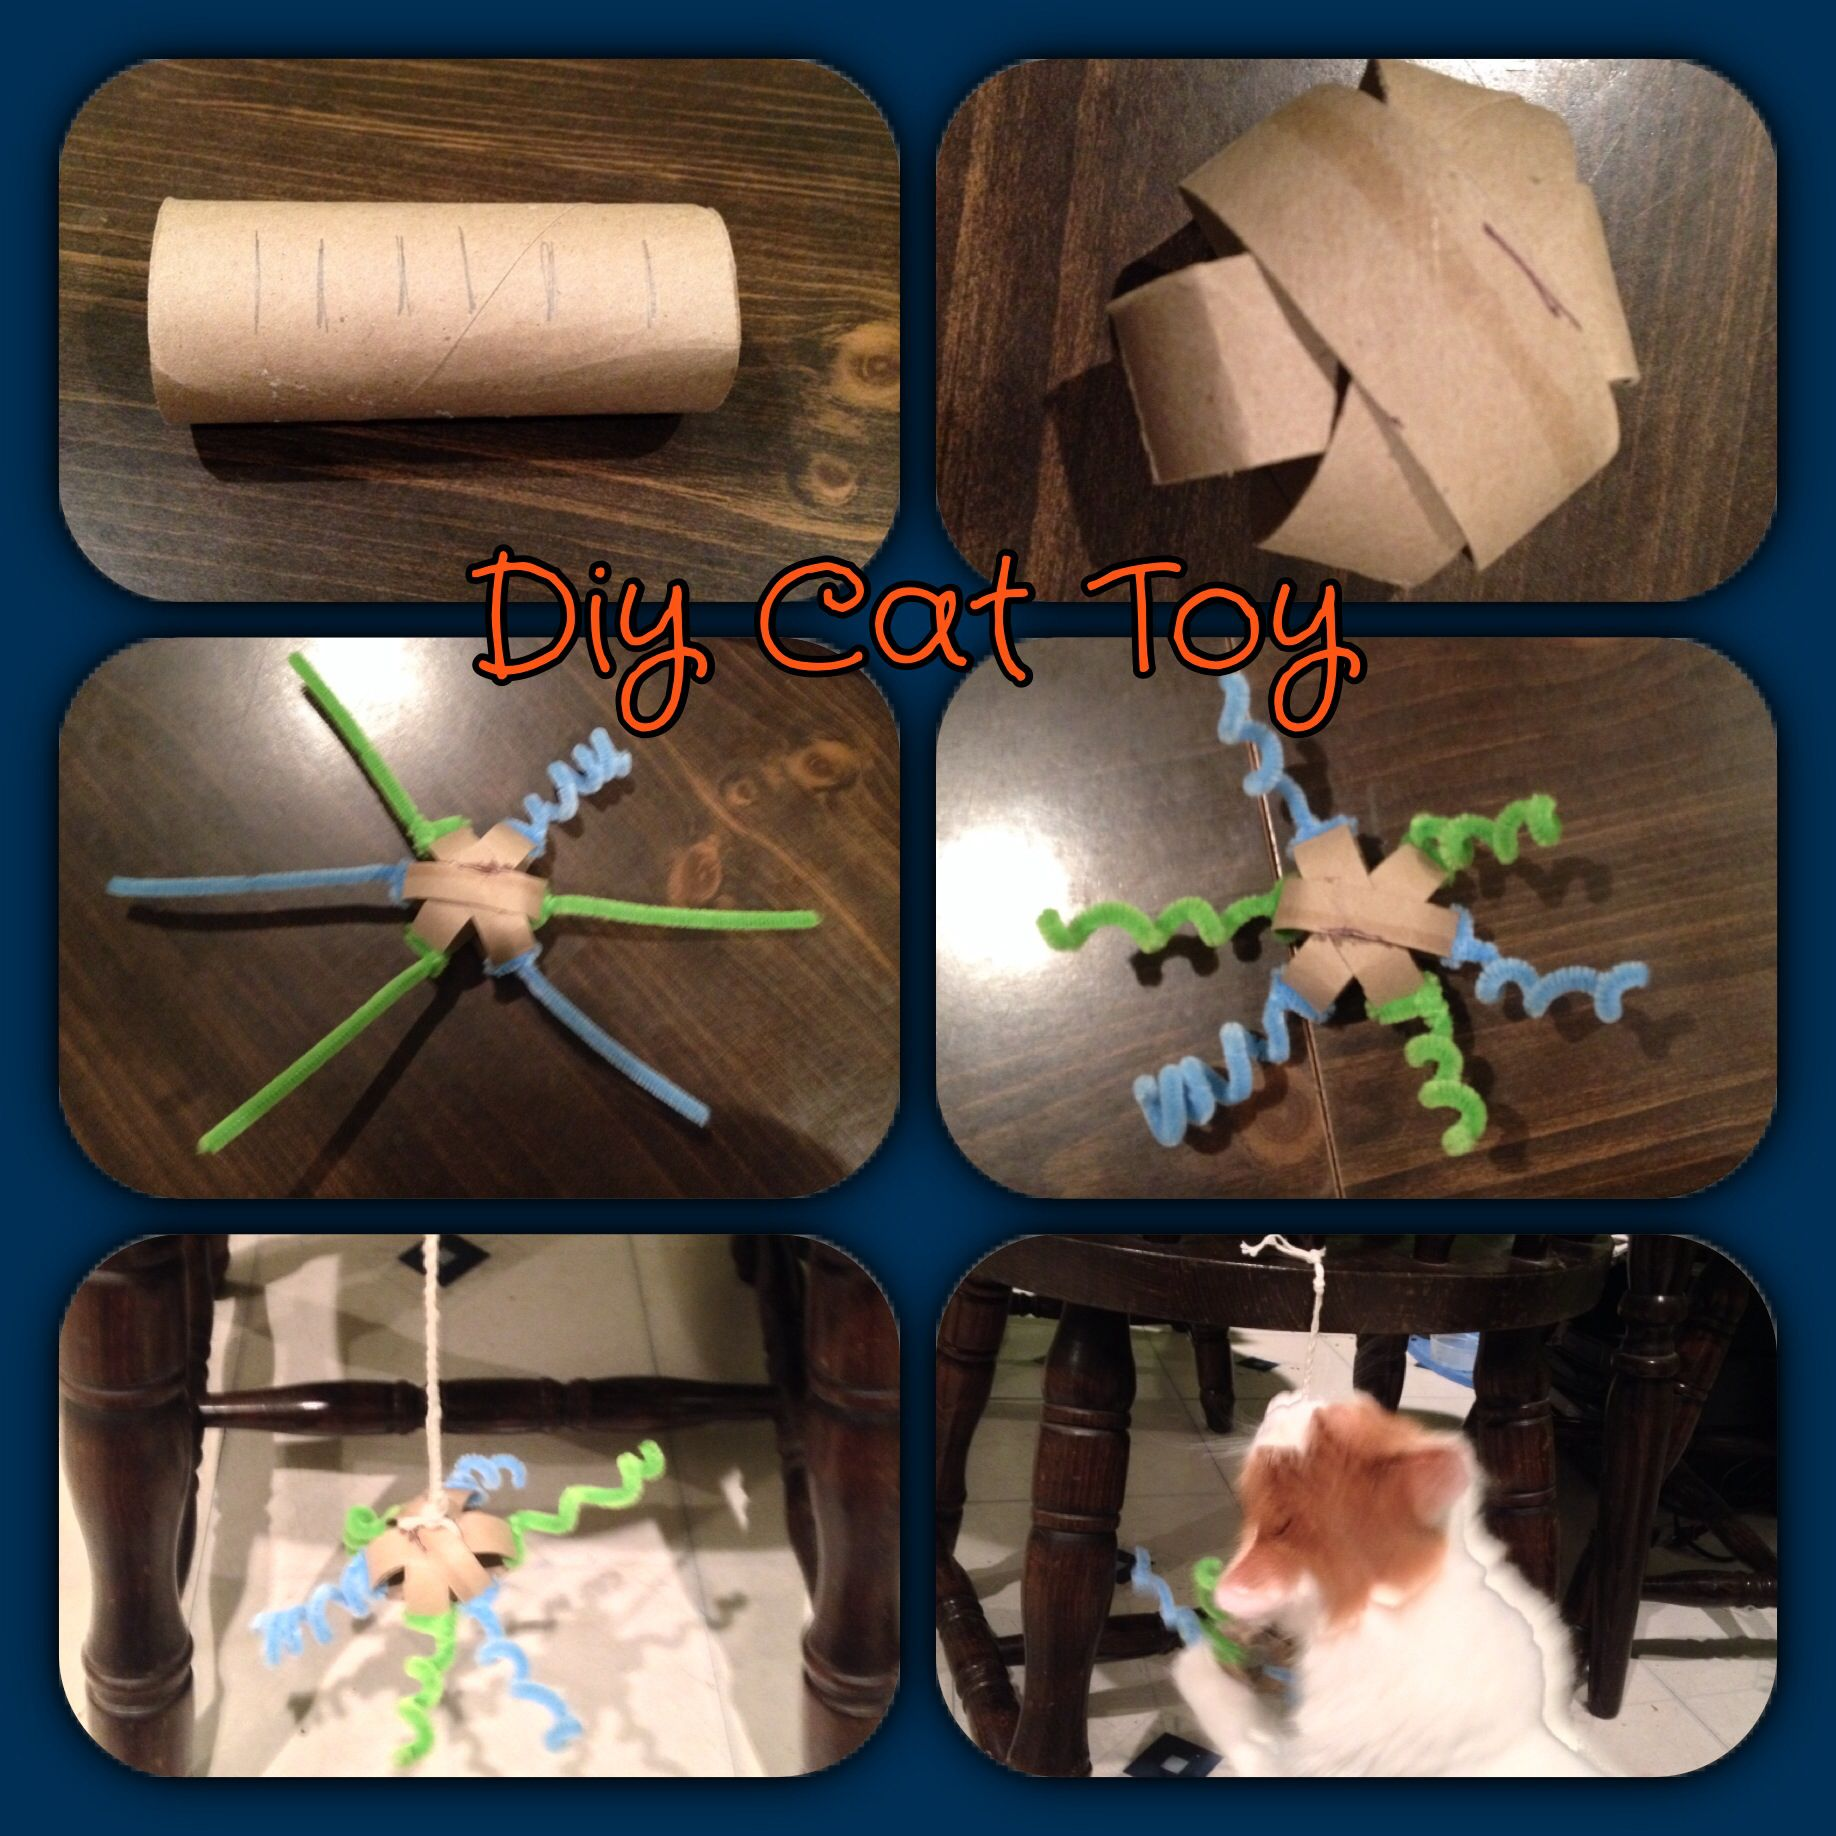 Diy toilet paper roll cat toyinstructions on their way